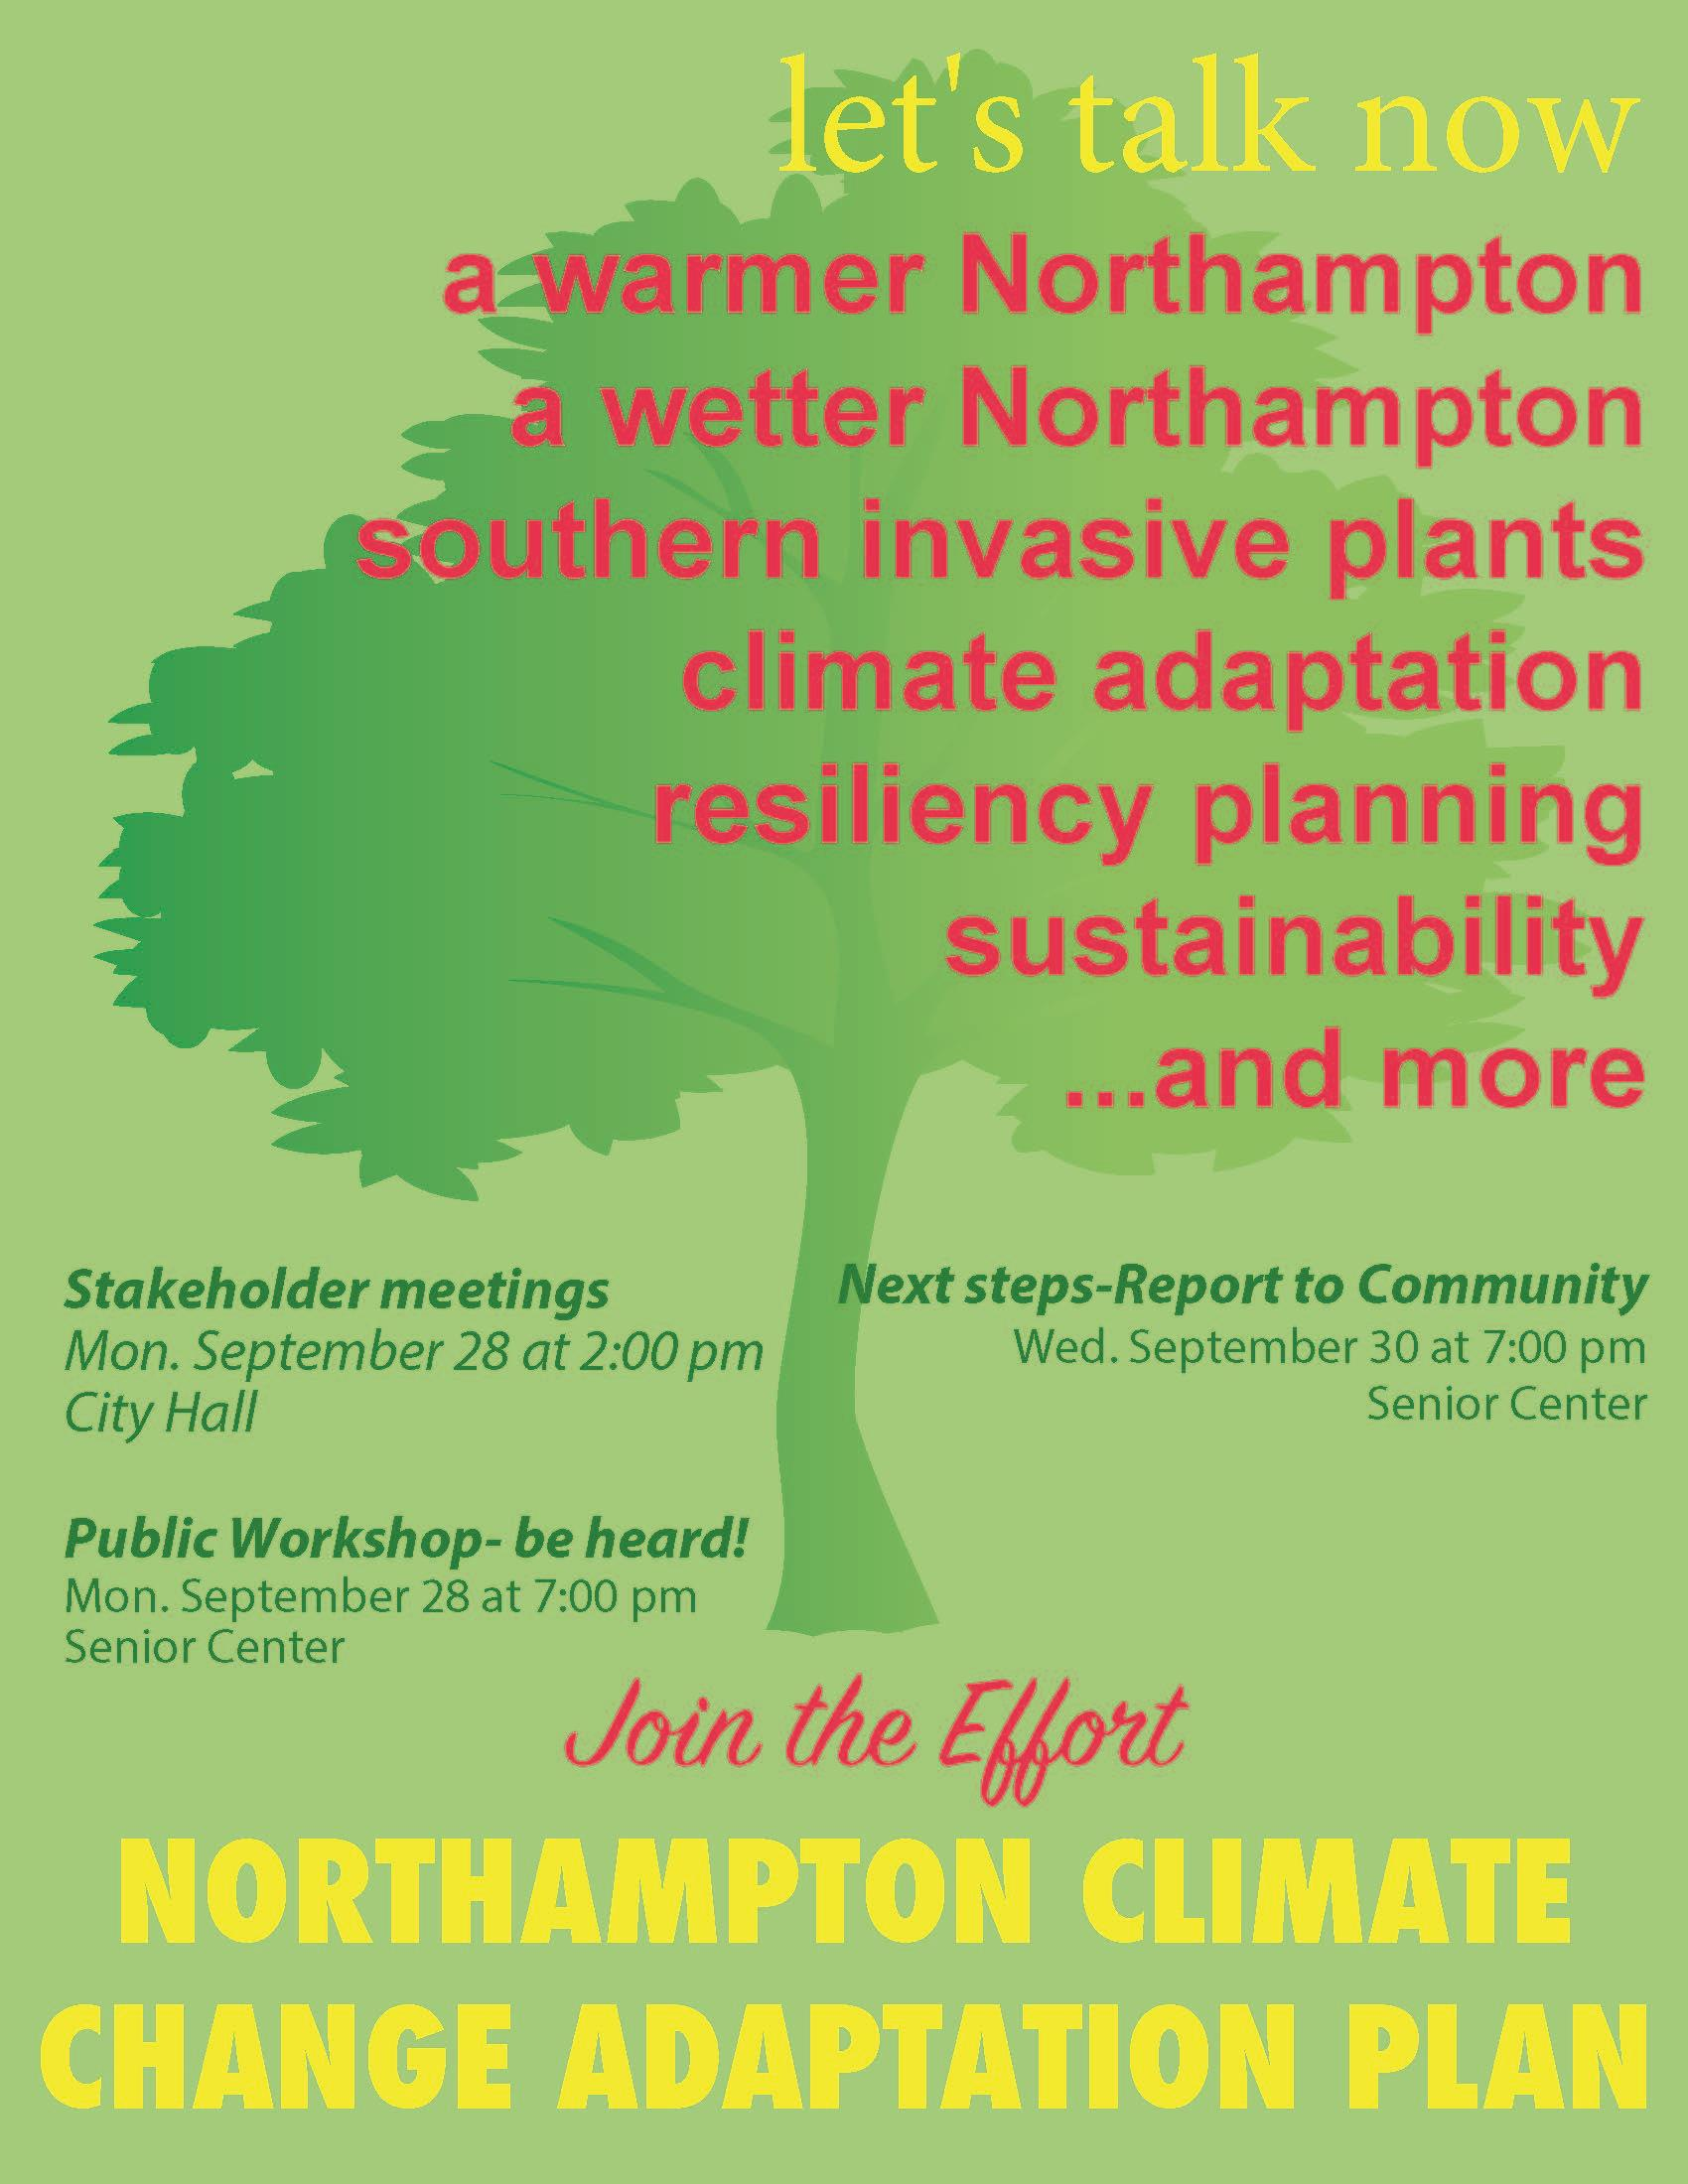 Flyer for Climate Adaptation Meeting with Stakeholders